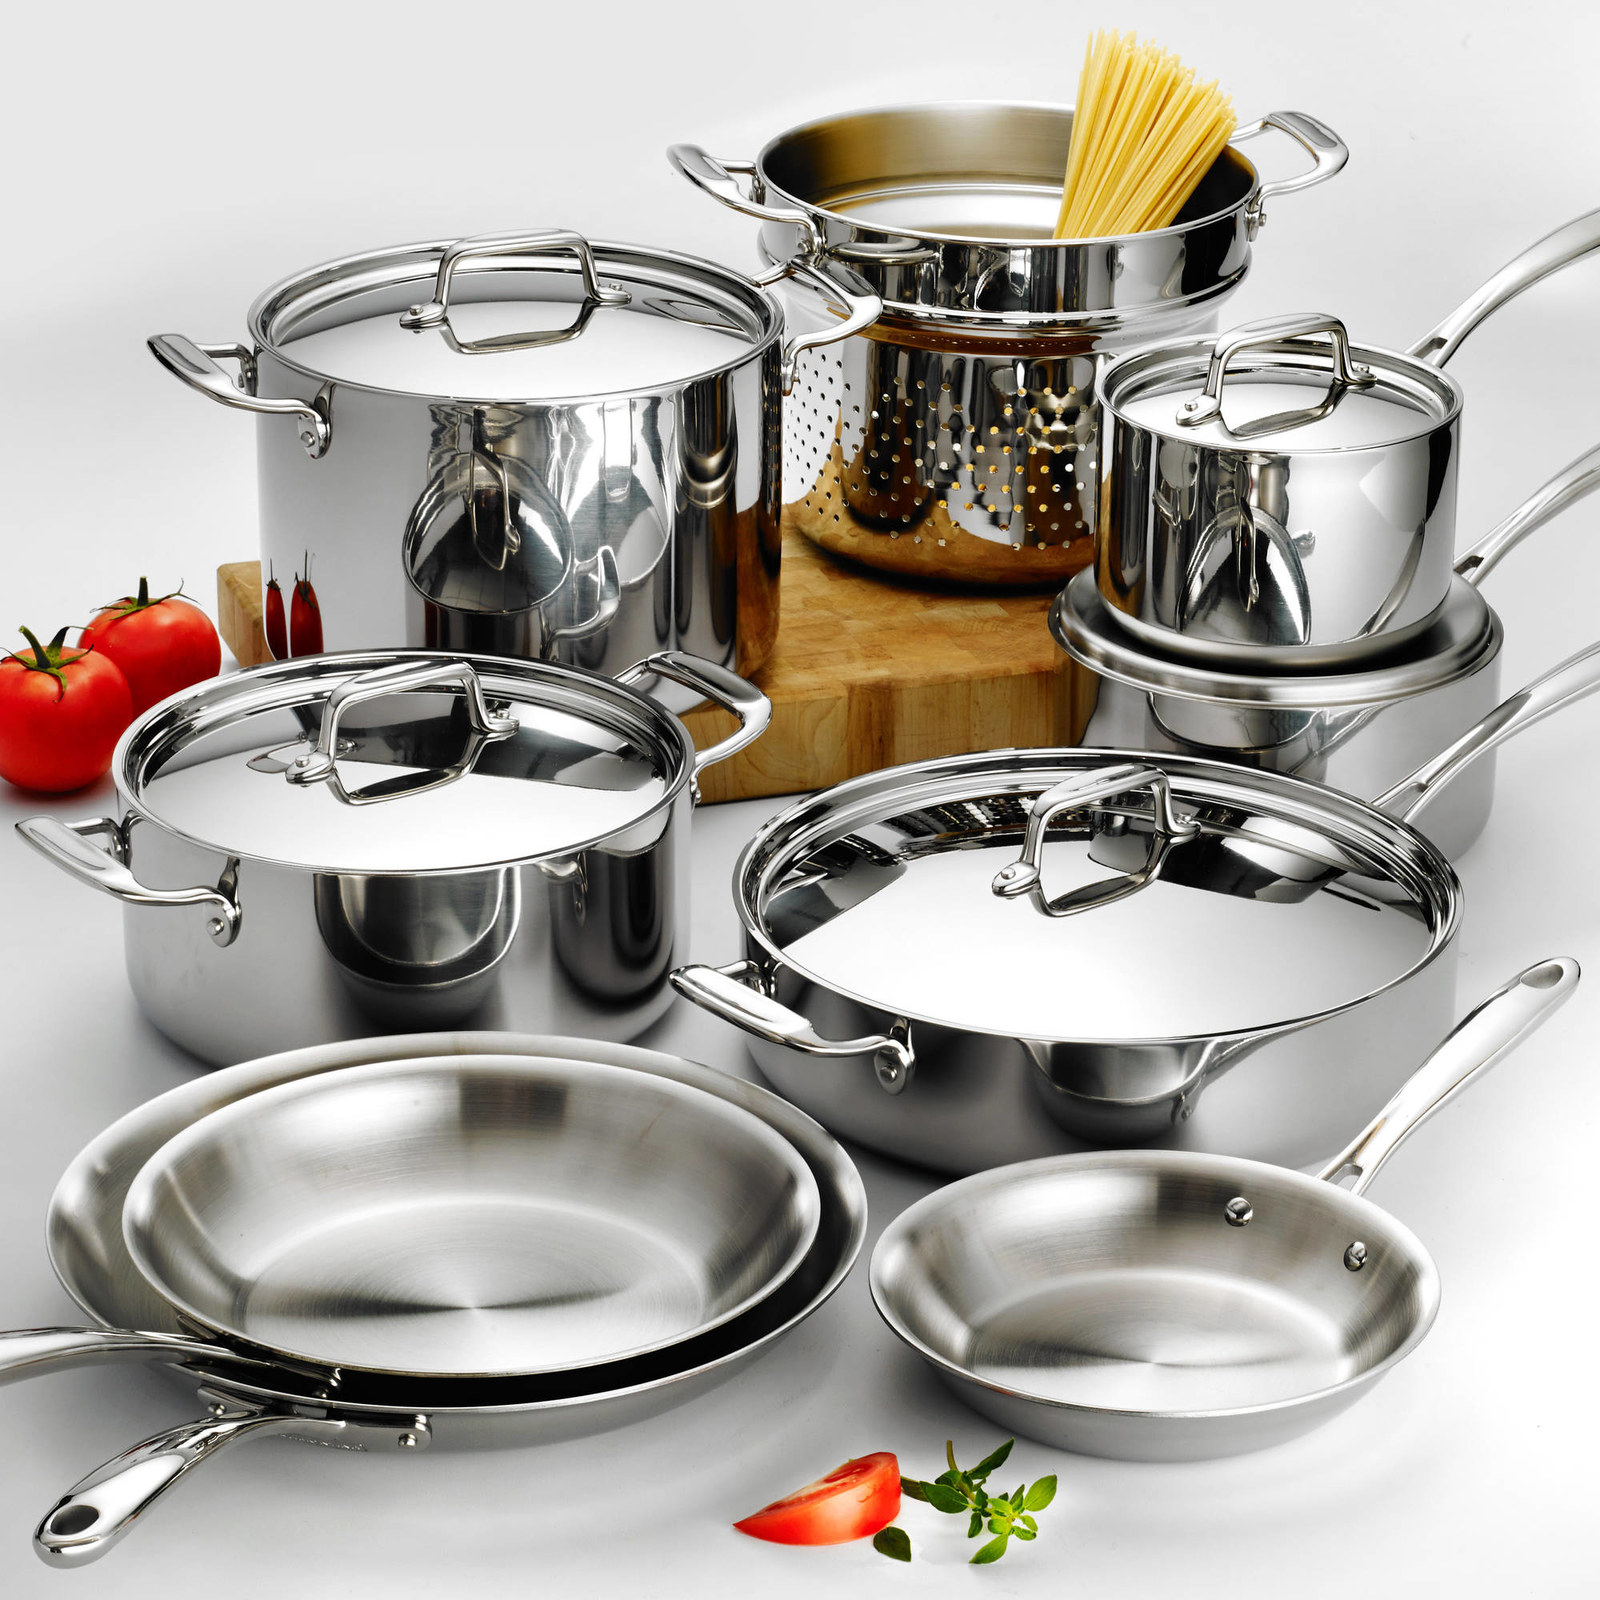 5 main advantages of using stainless   steel cookware